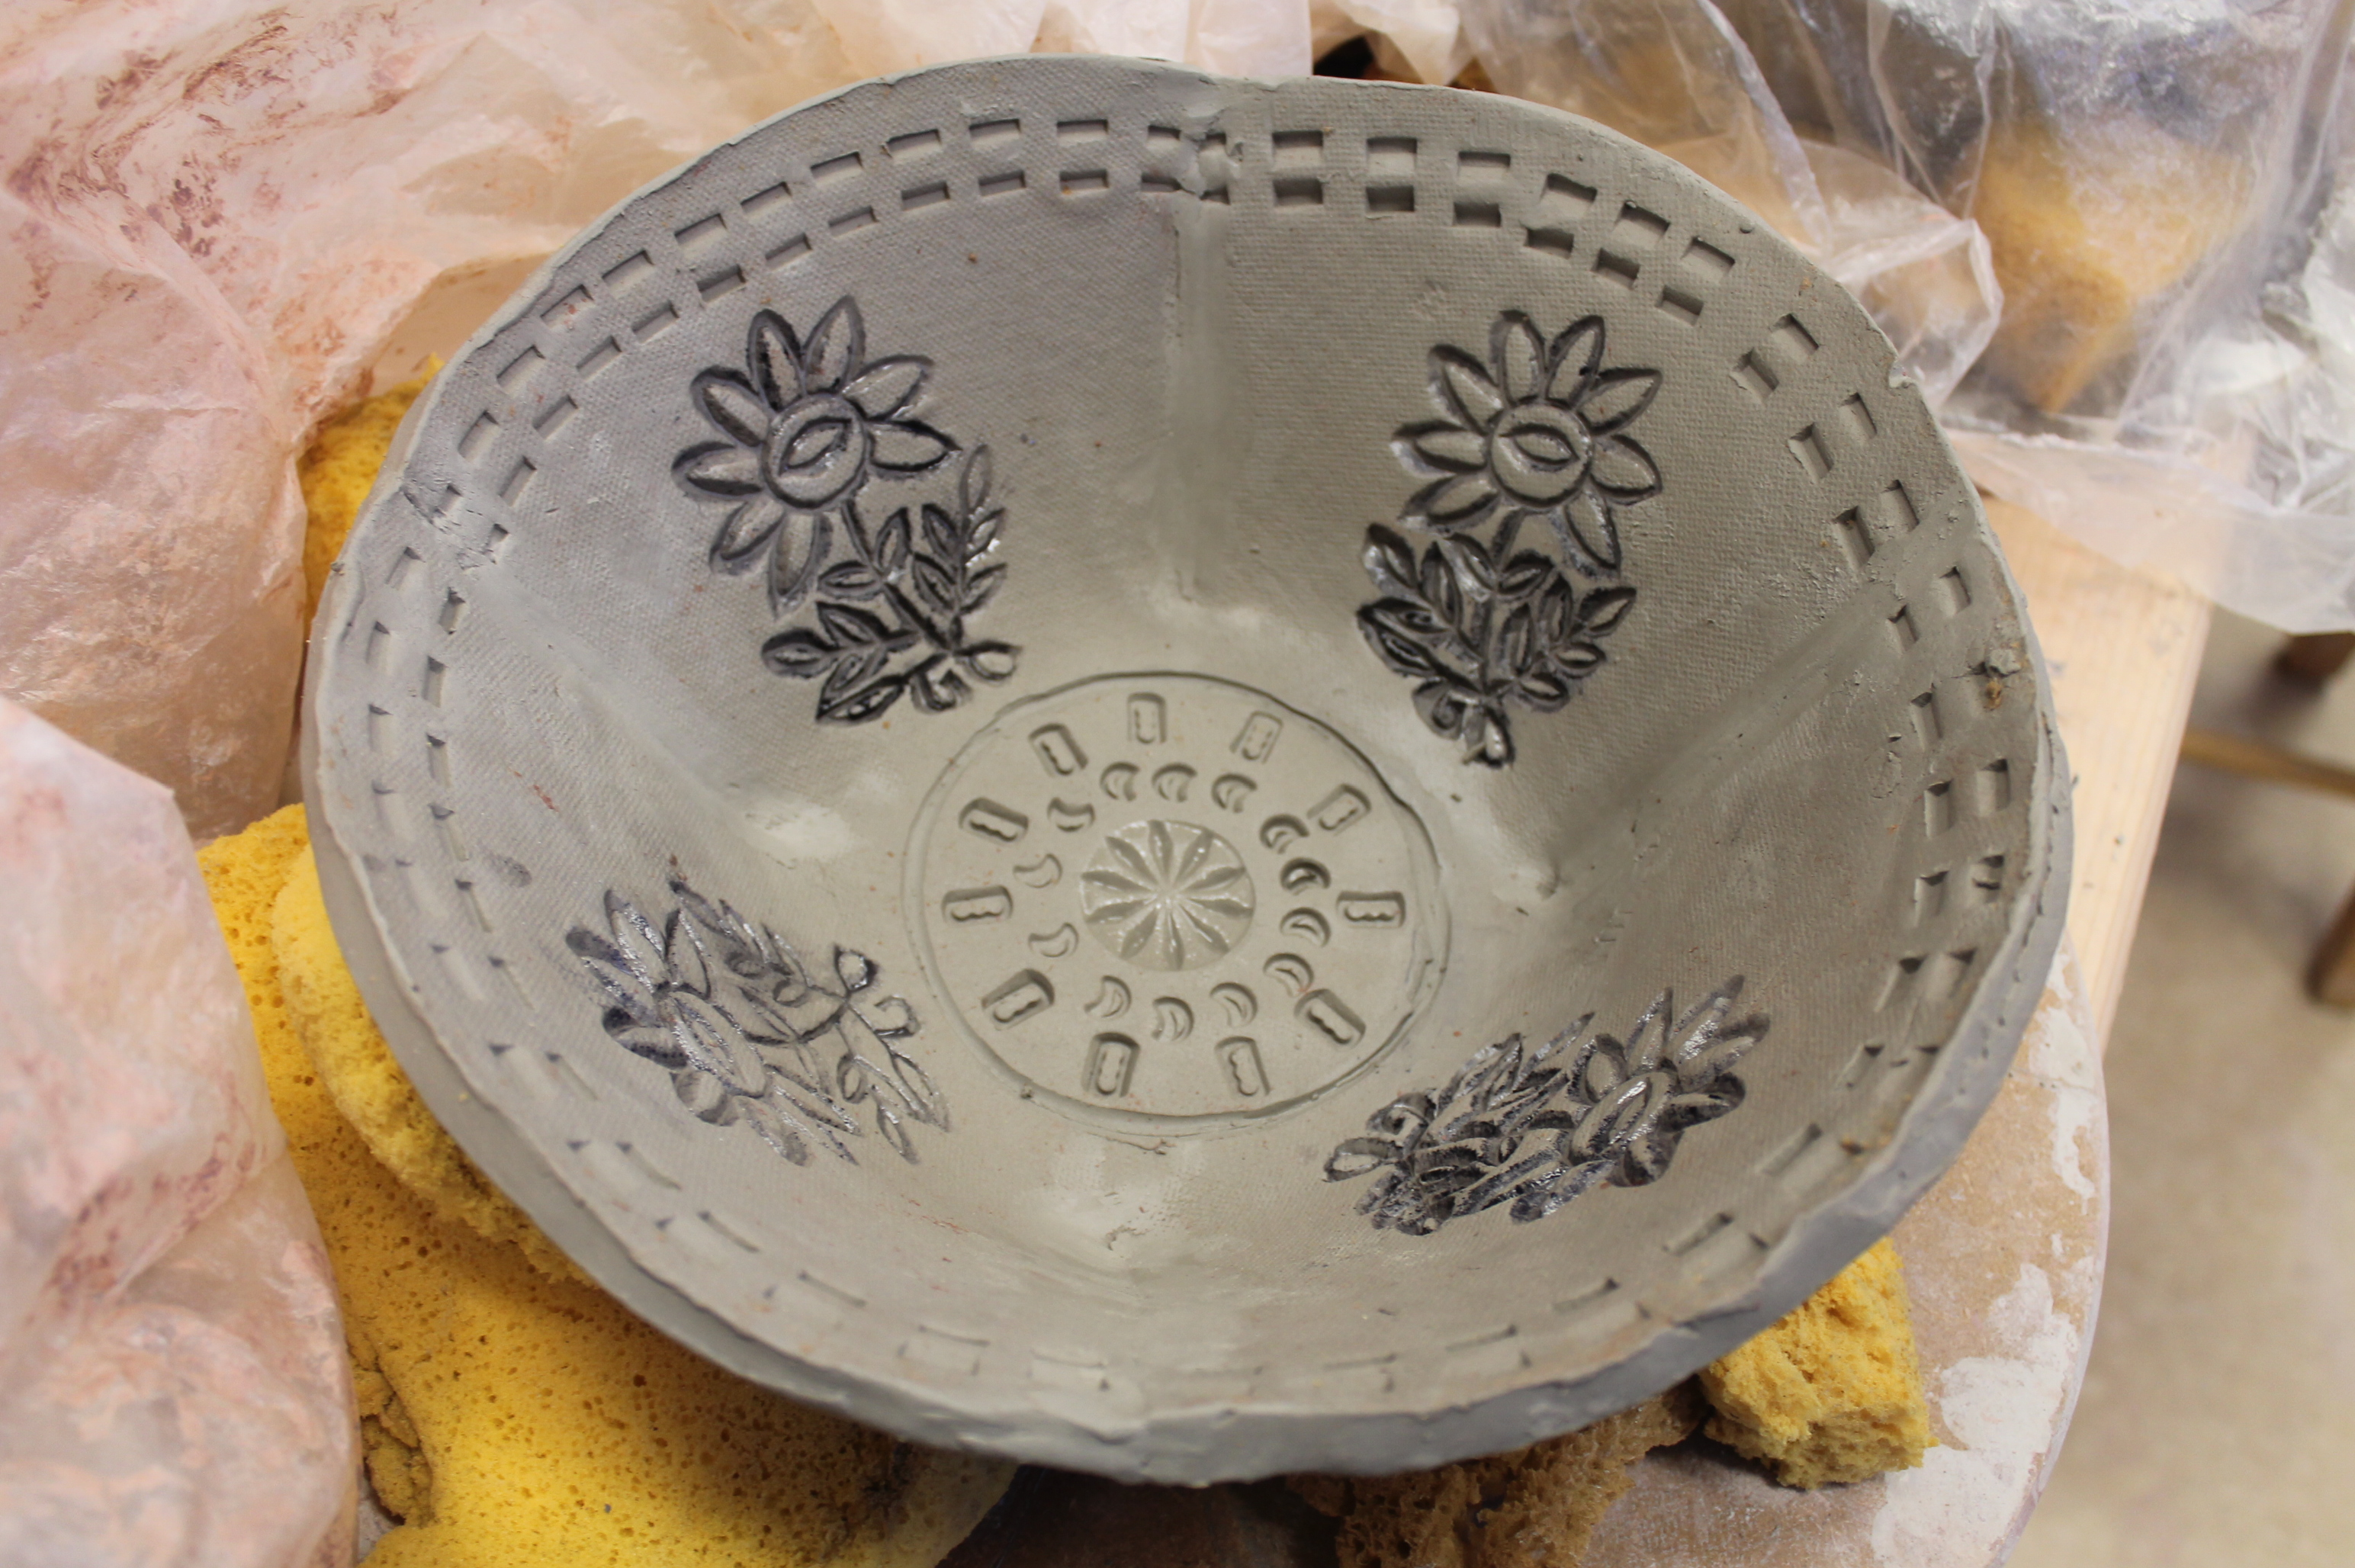 #274 - SLAB POTTERY NOTCH-CUT BOWLS (7)